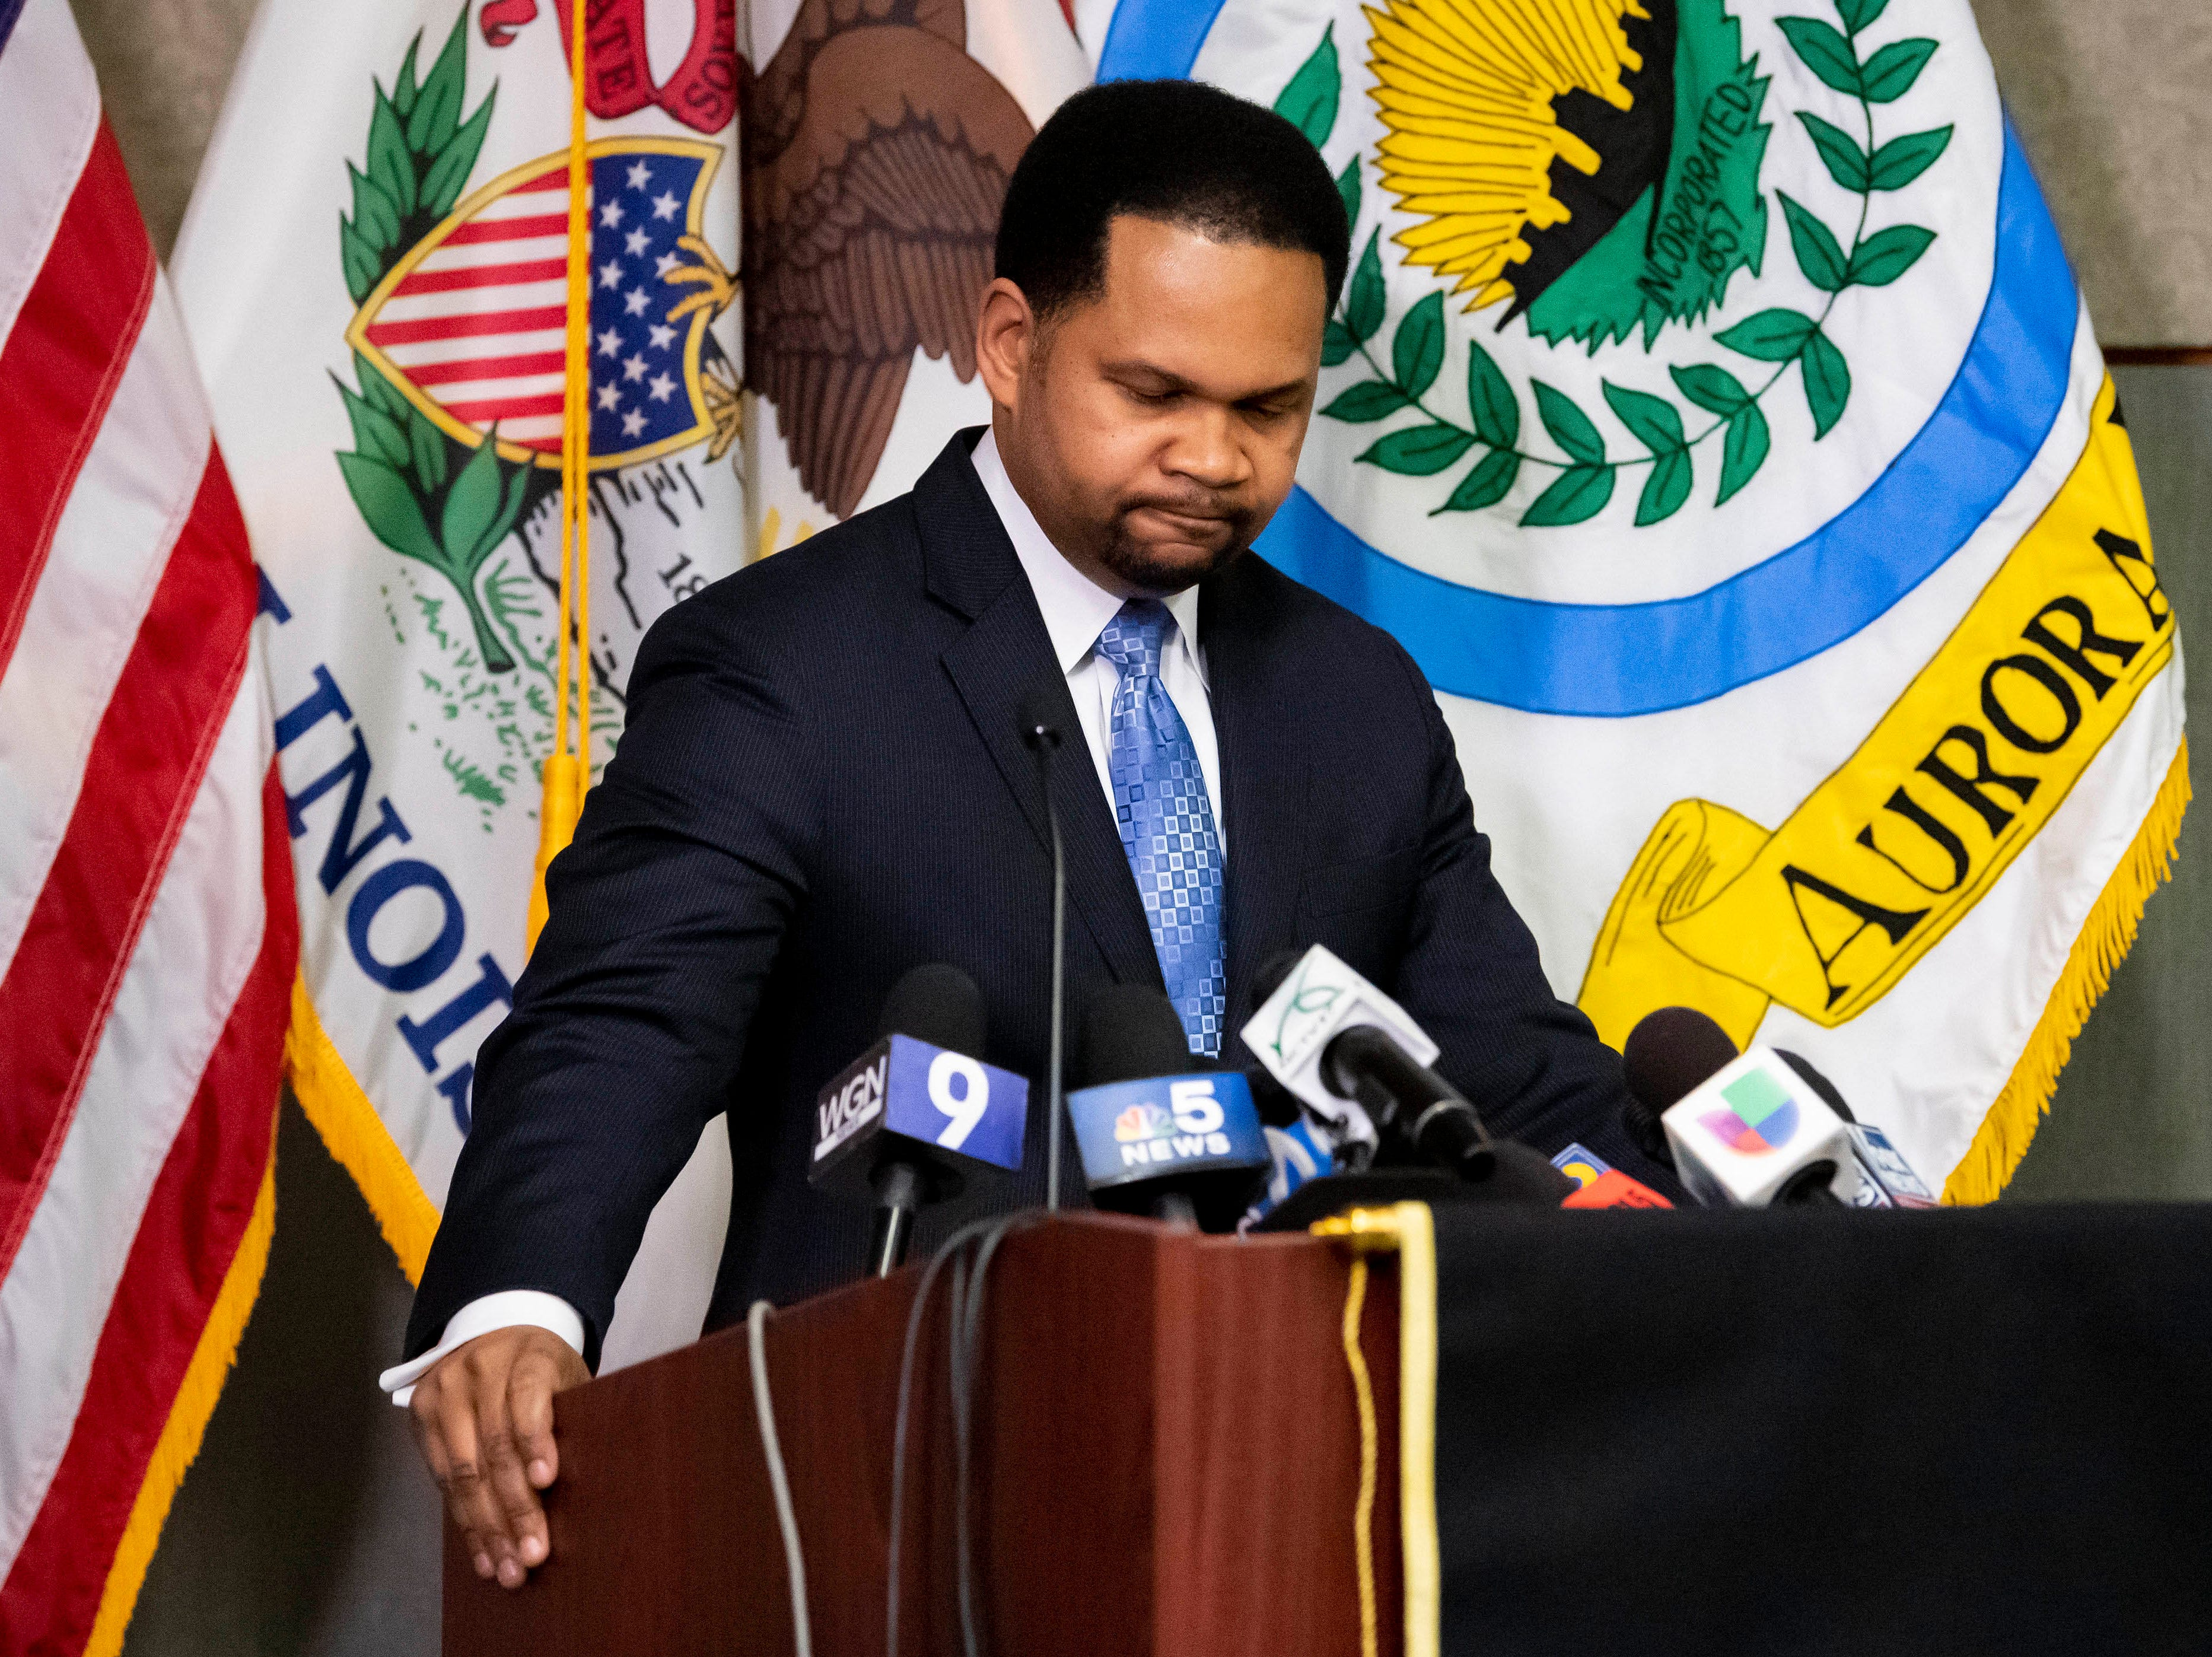 Aurora Mayor Richard C. Irvin reacts during a press conference at the Aurora Police Headquarters, after an active shooter was neutralized at the Henry Pratt Company.